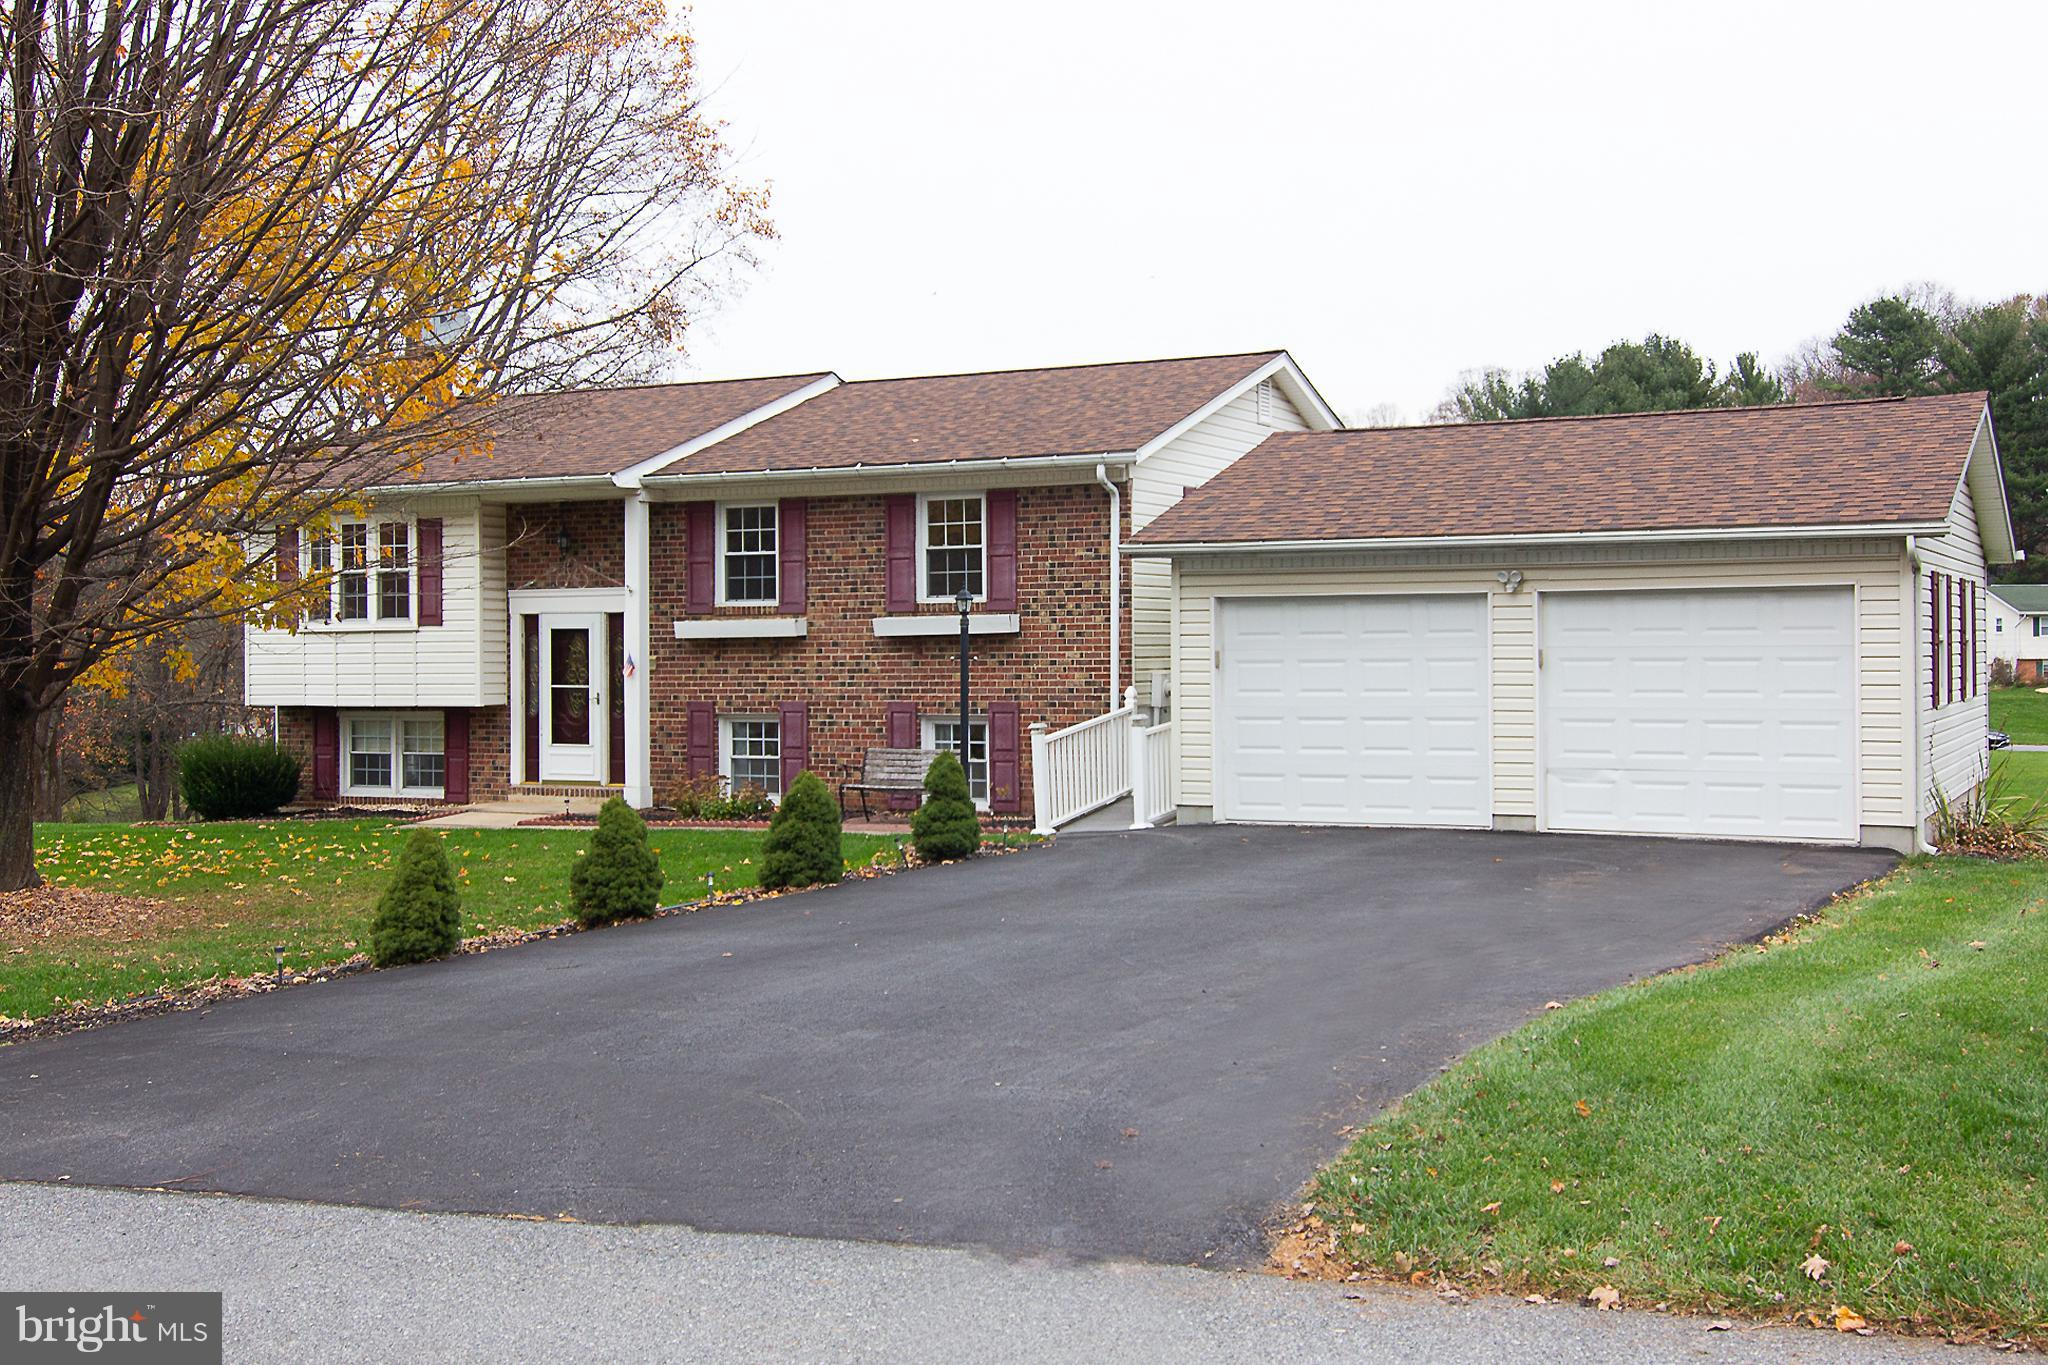 5907 DALE DRIVE, SYKESVILLE, MD 21784